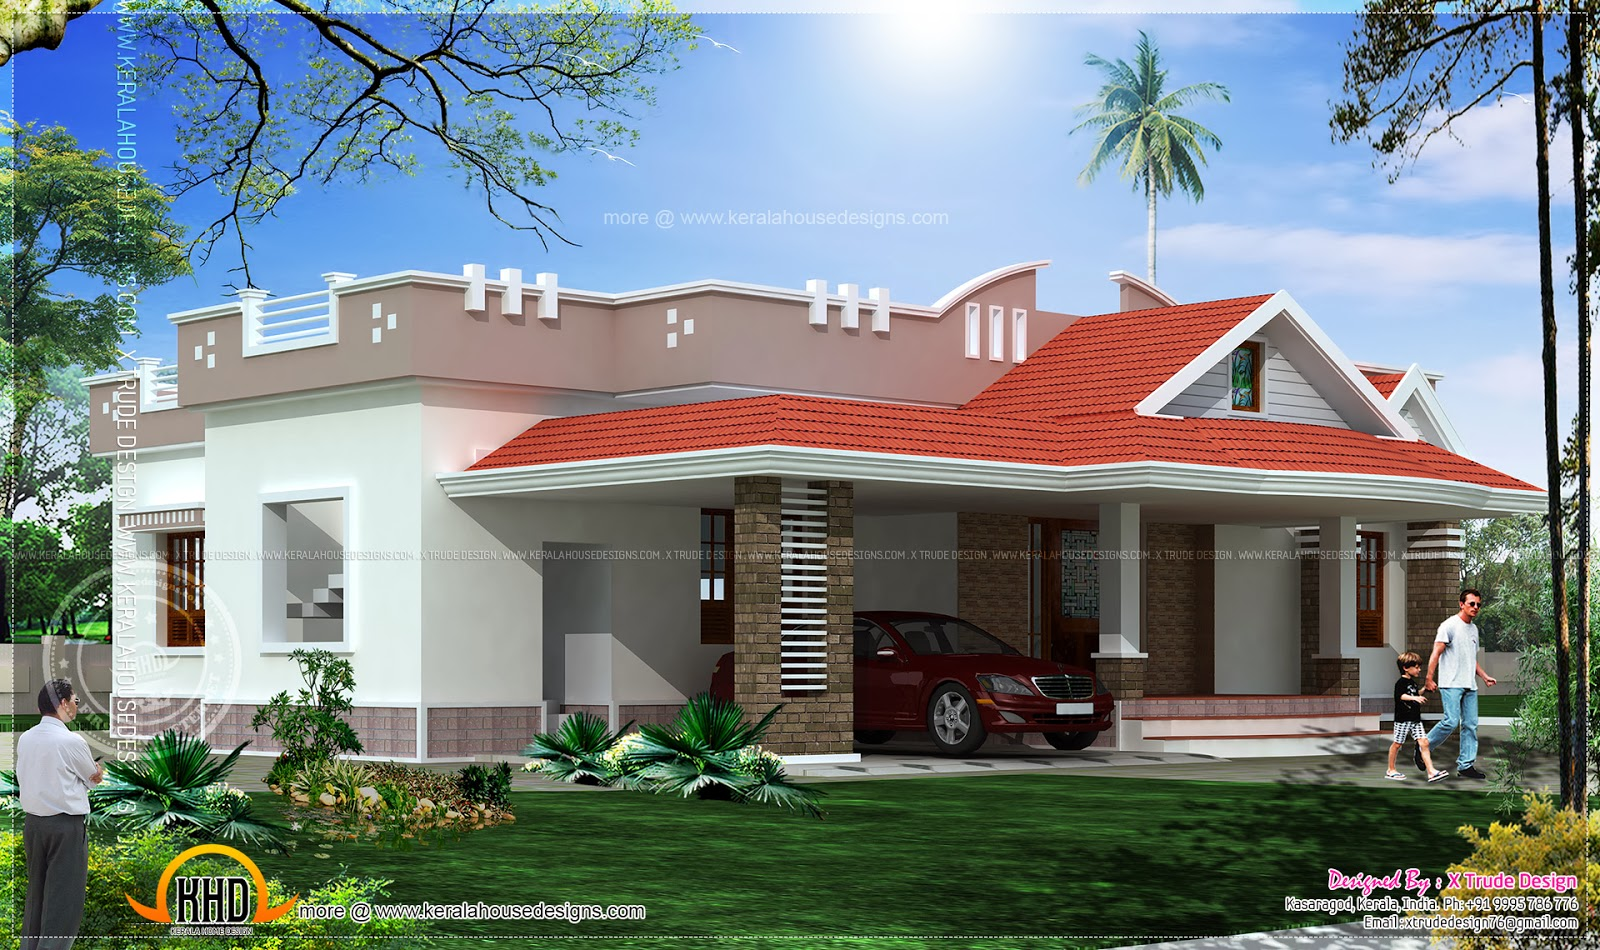 Single storied 2 bedroom house elevation kerala home for Single home design